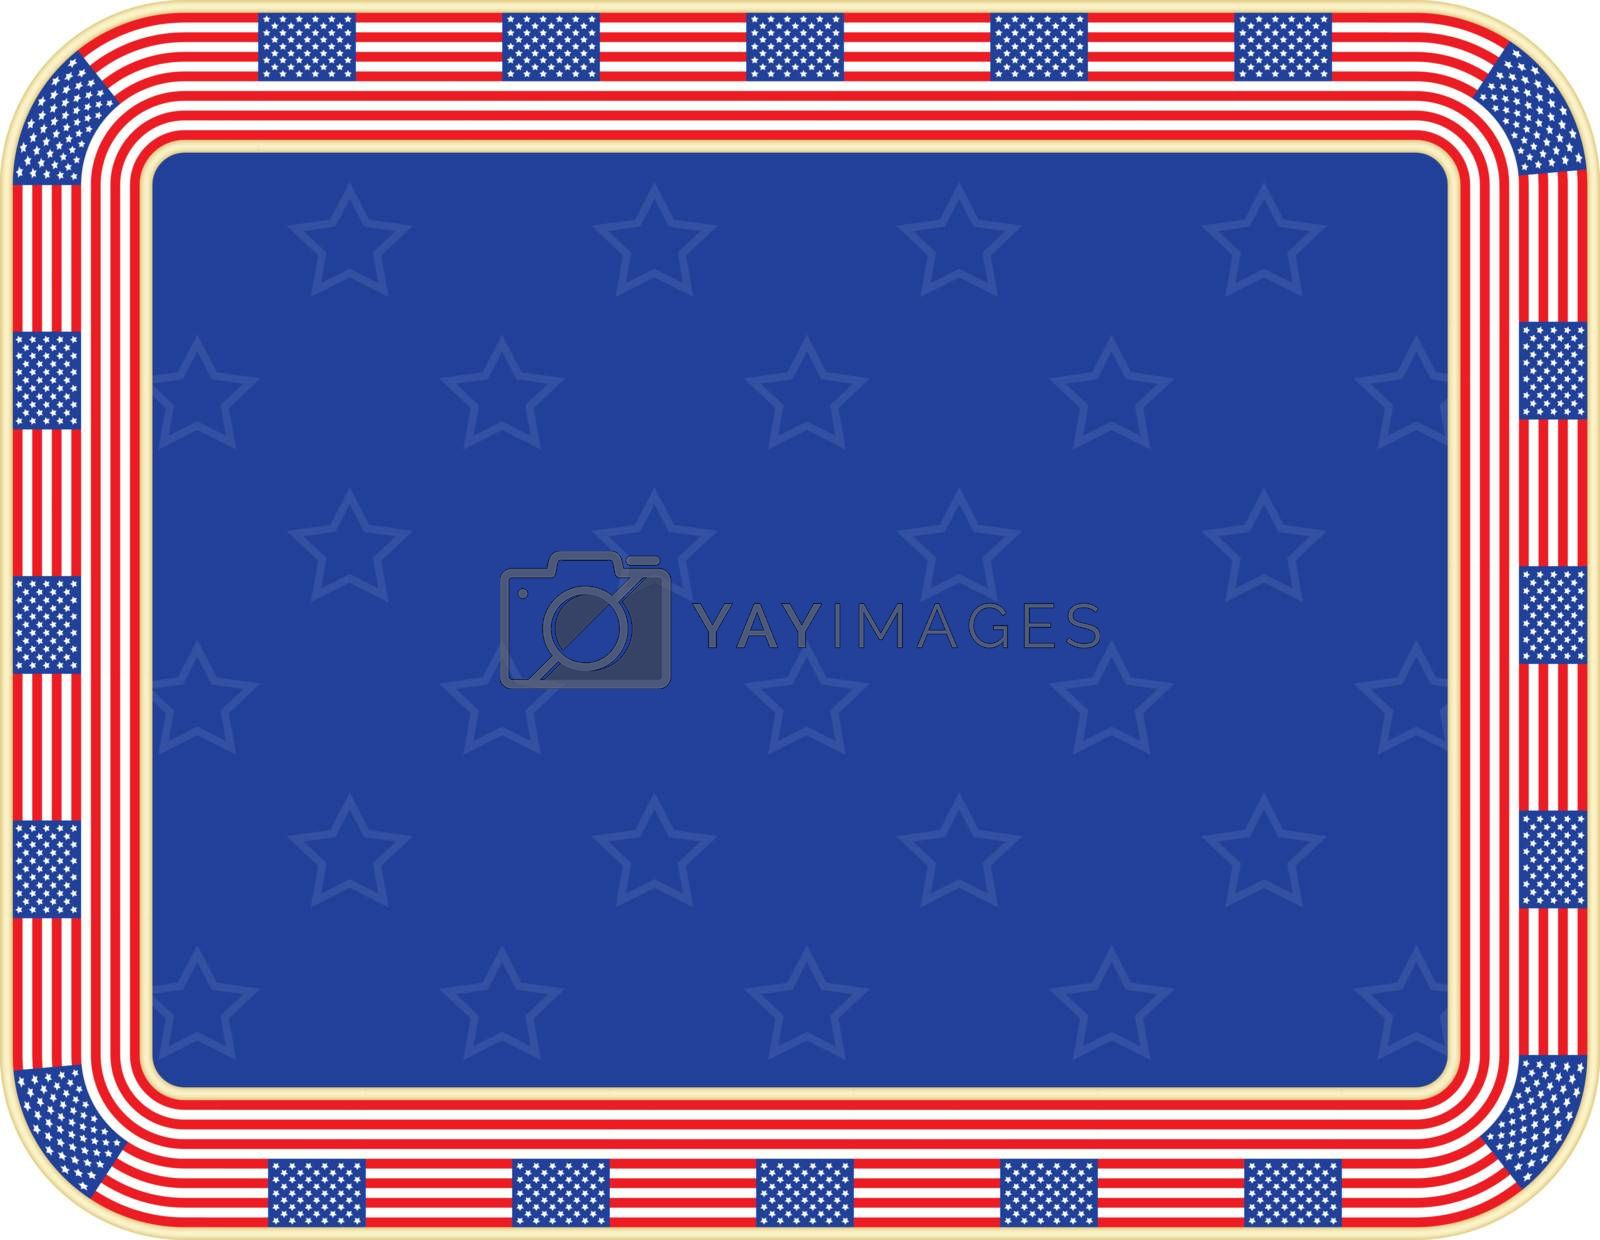 Independence Day background with frame made of United States flags